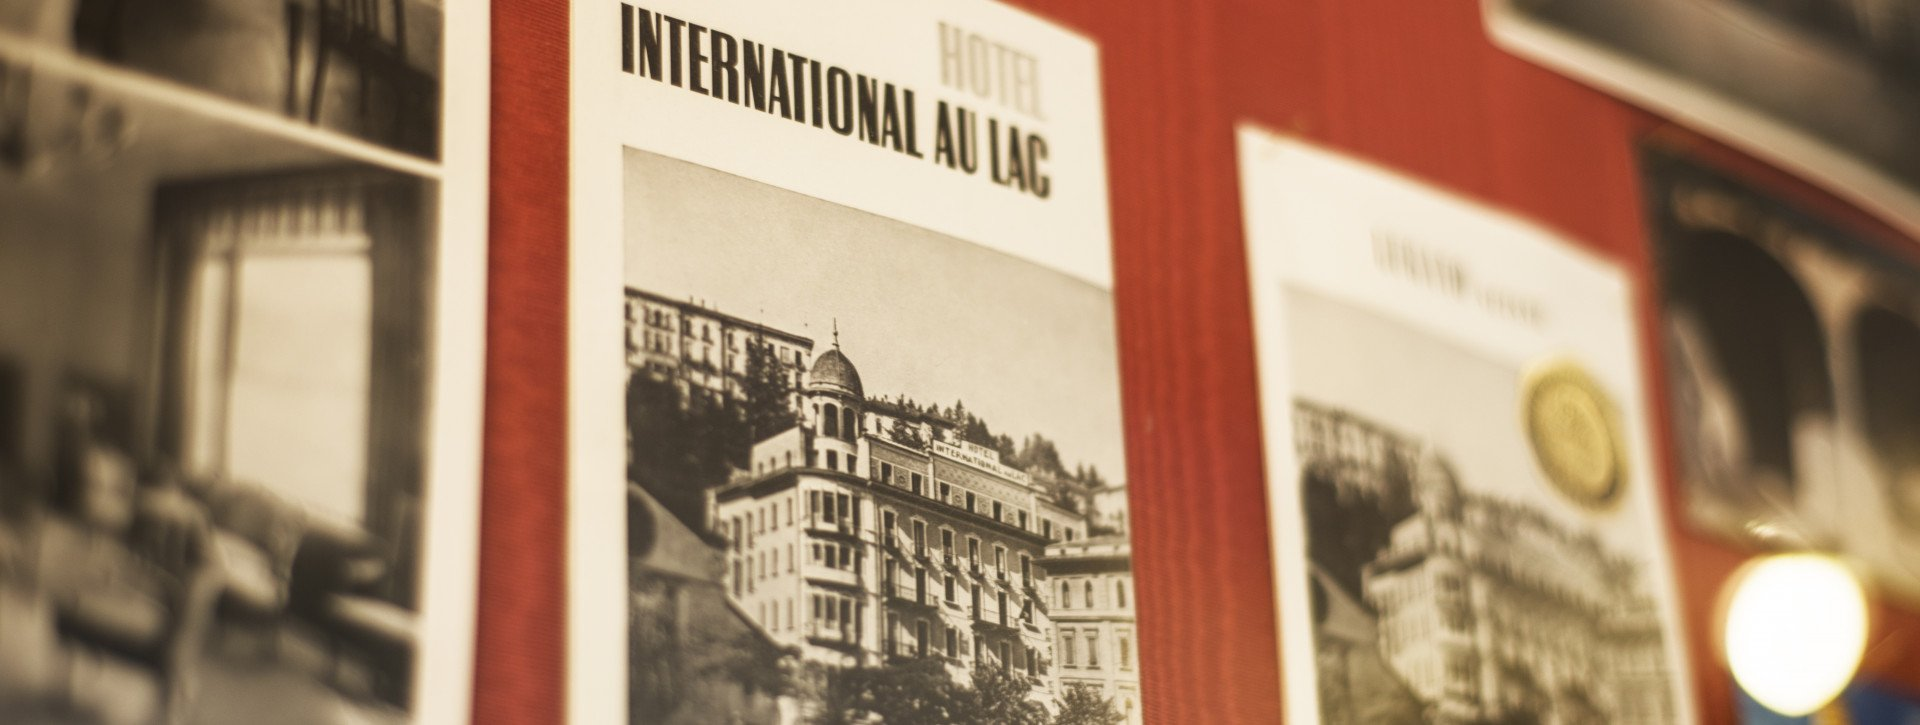 Historic picture of the International au Lac Historic Lakeside Hotel